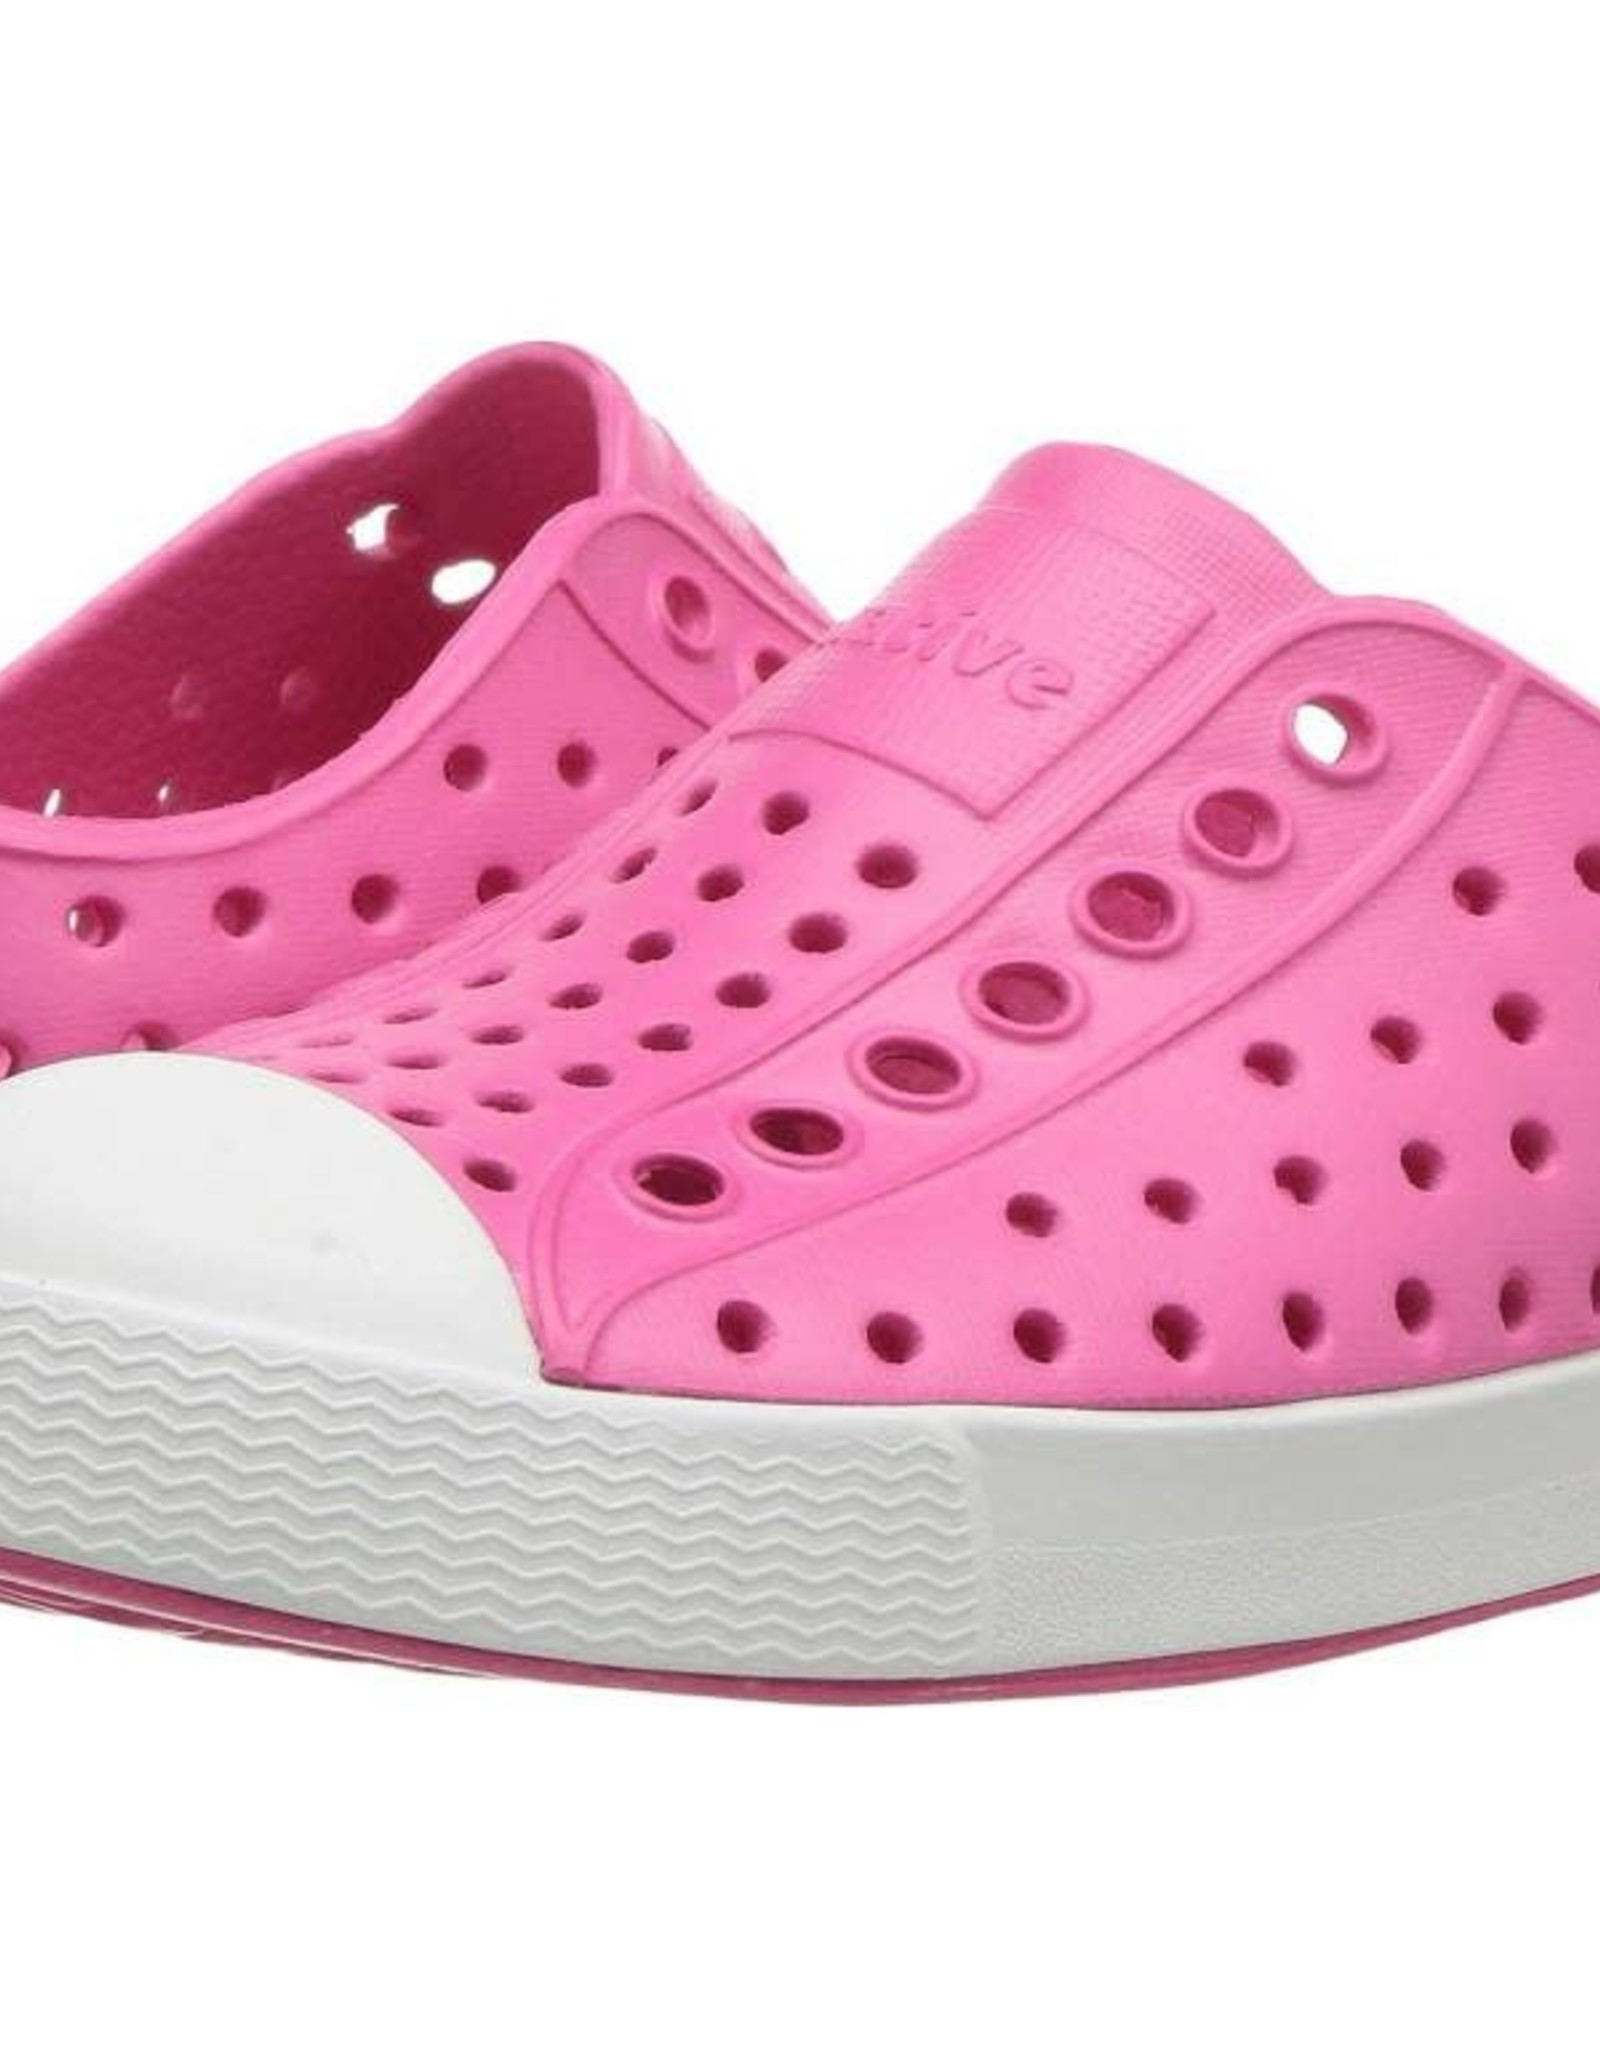 Native Shoes Jefferson in Hollywood Pink/Shell White